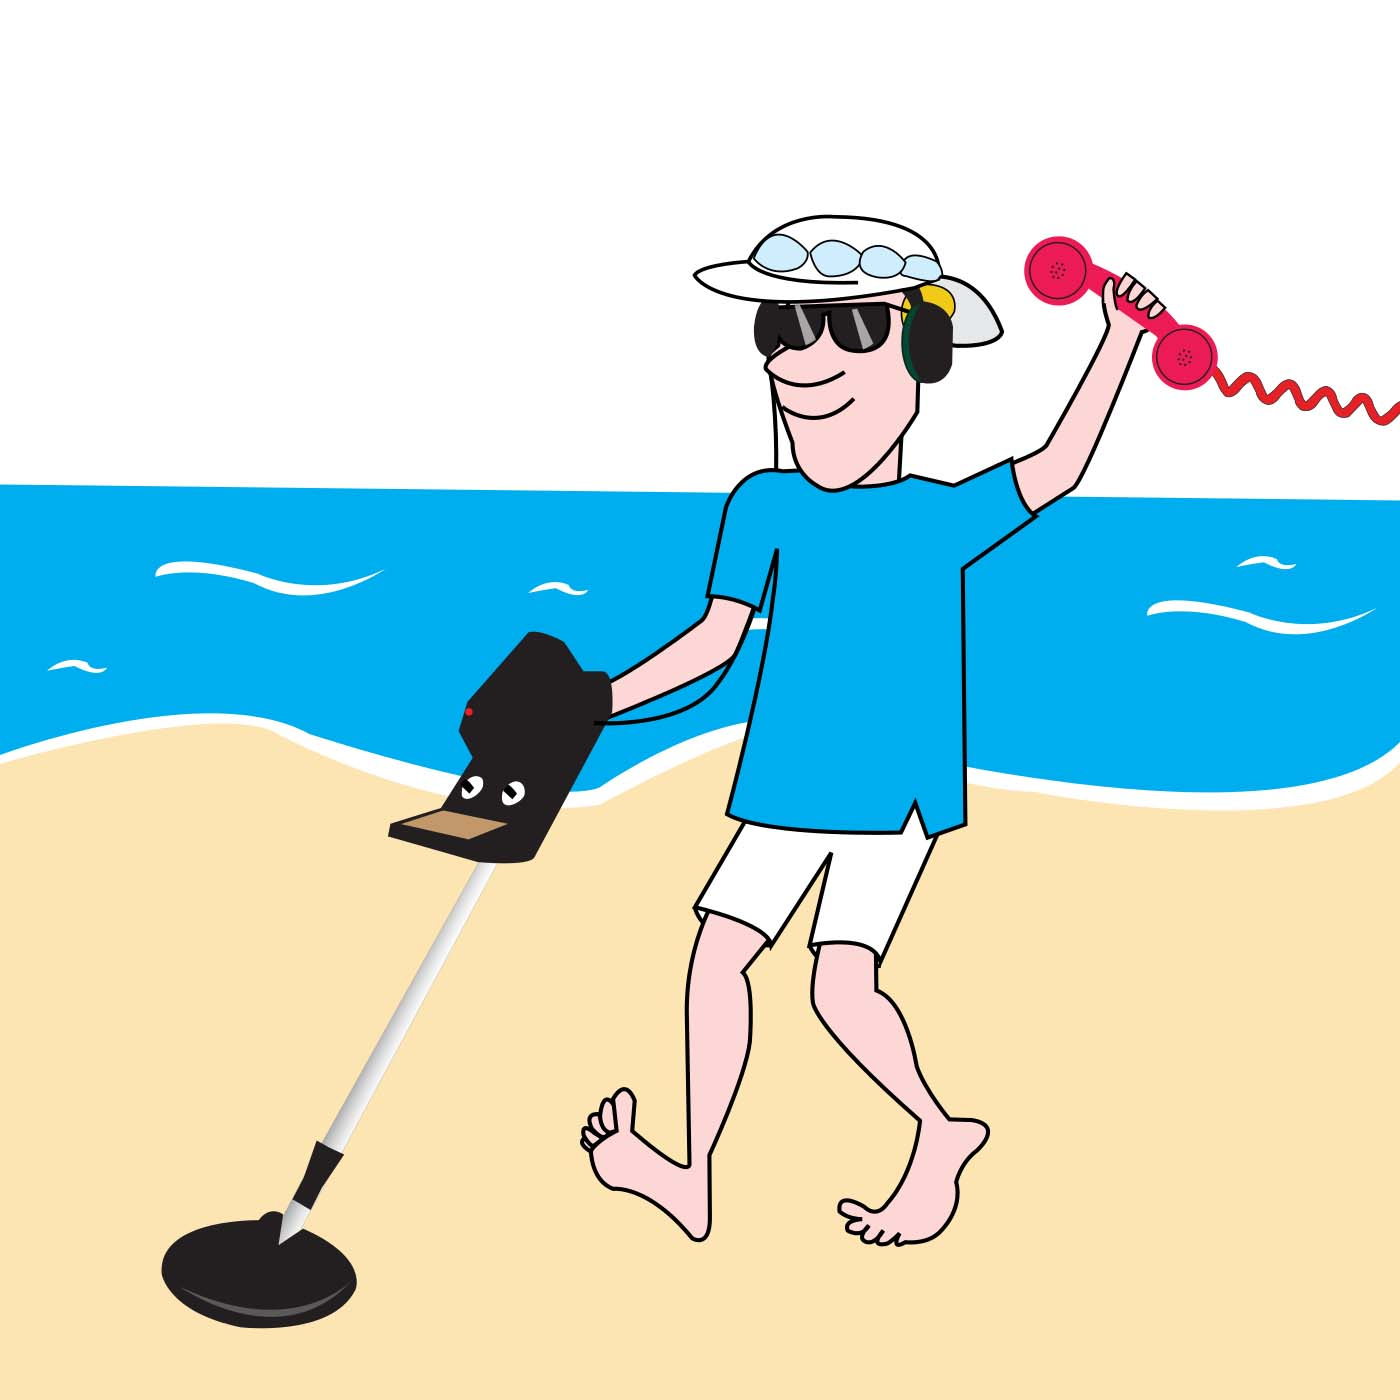 19: How to Find a Ring With a Metal Detector